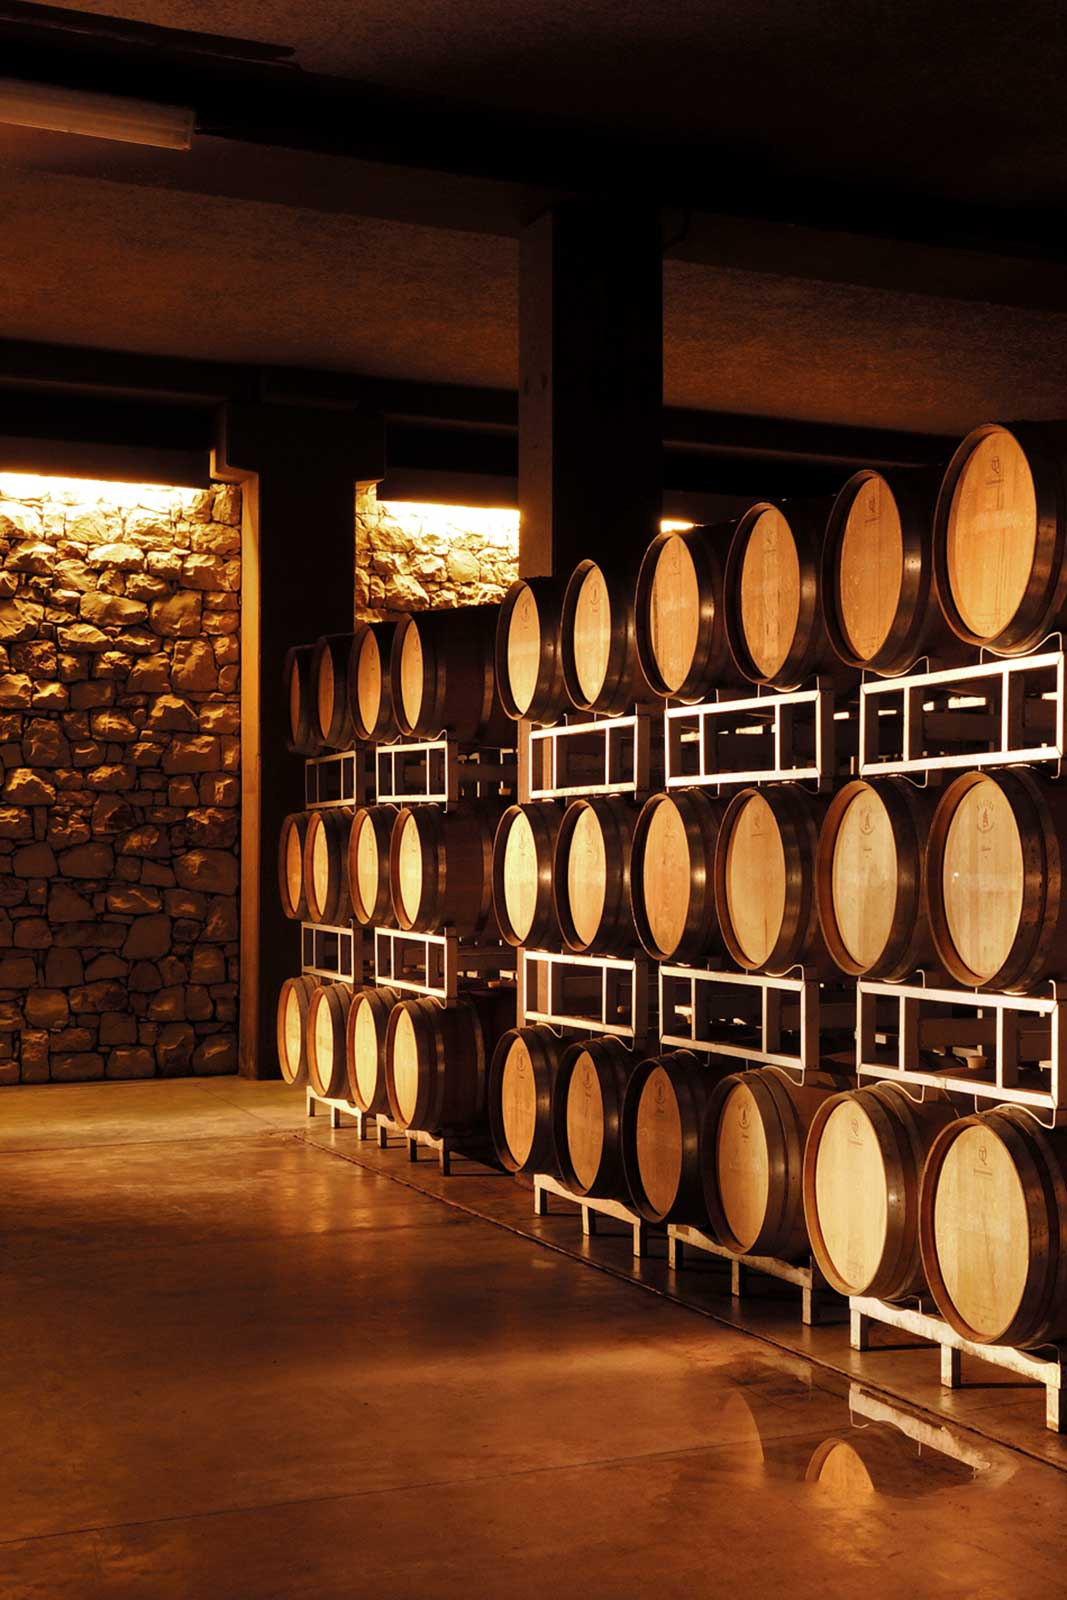 The barrel room at the winery in Franciacorta. ©Winebow